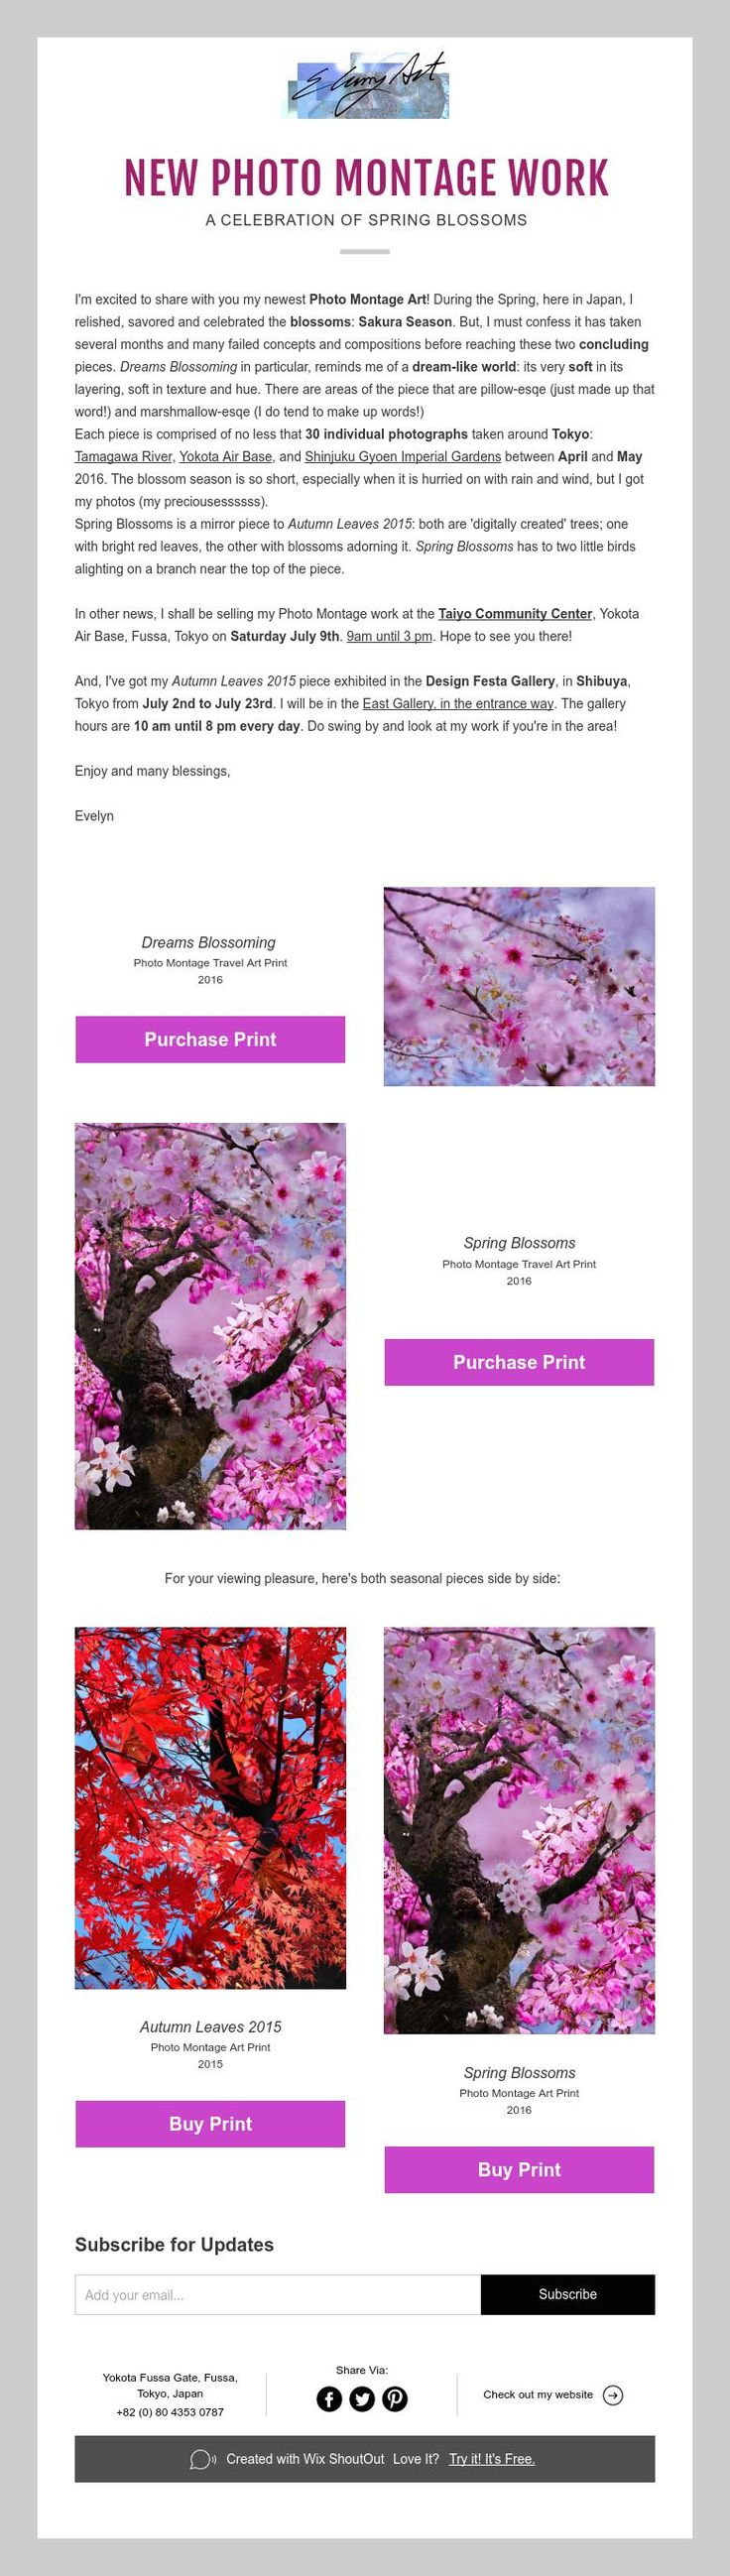 NEW PHOTO MONTAGE WORK  A CELEBRATION OF SPRING BLOSSOMS